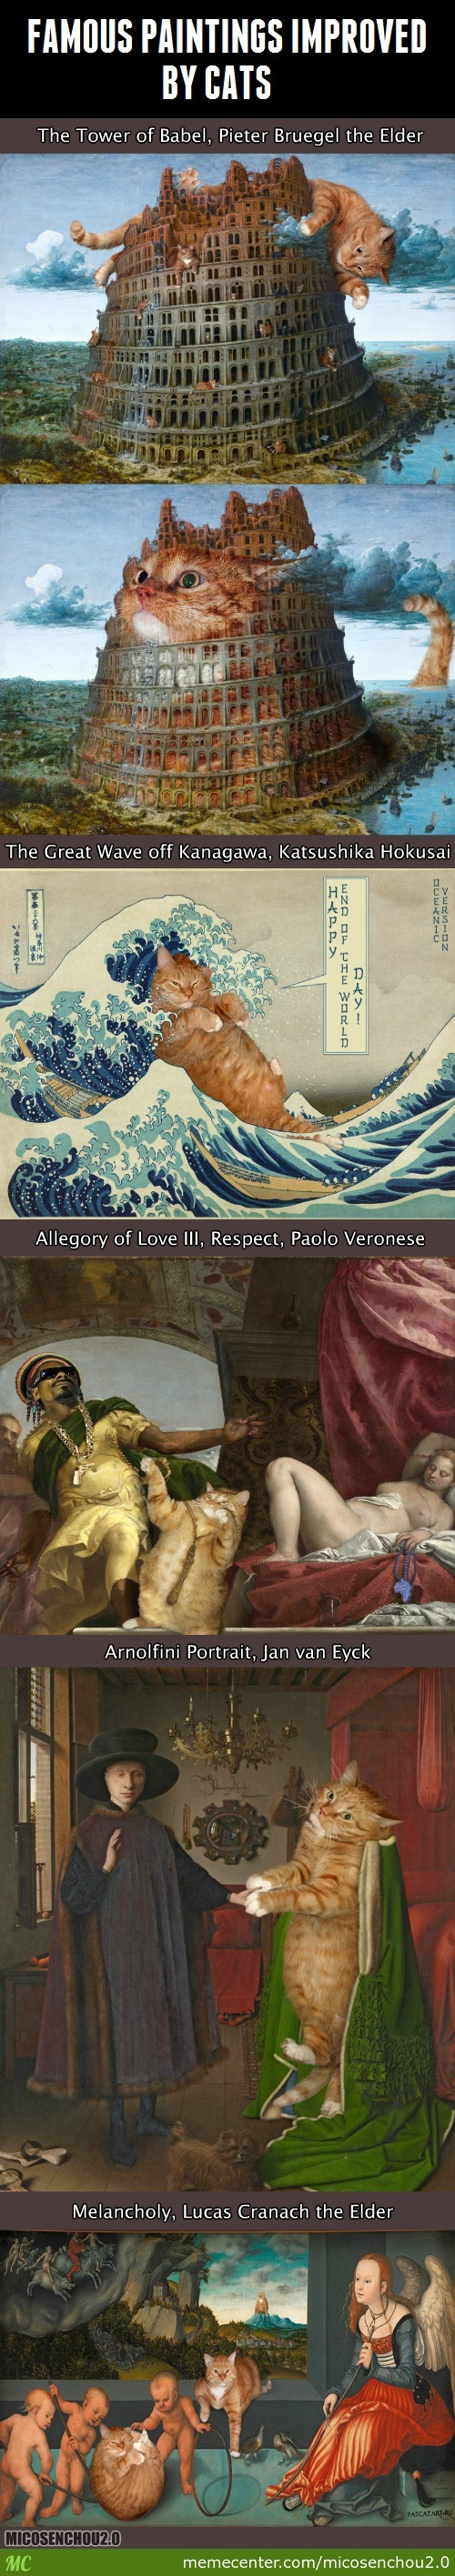 Famous Paintings Improved By Cats Part 2